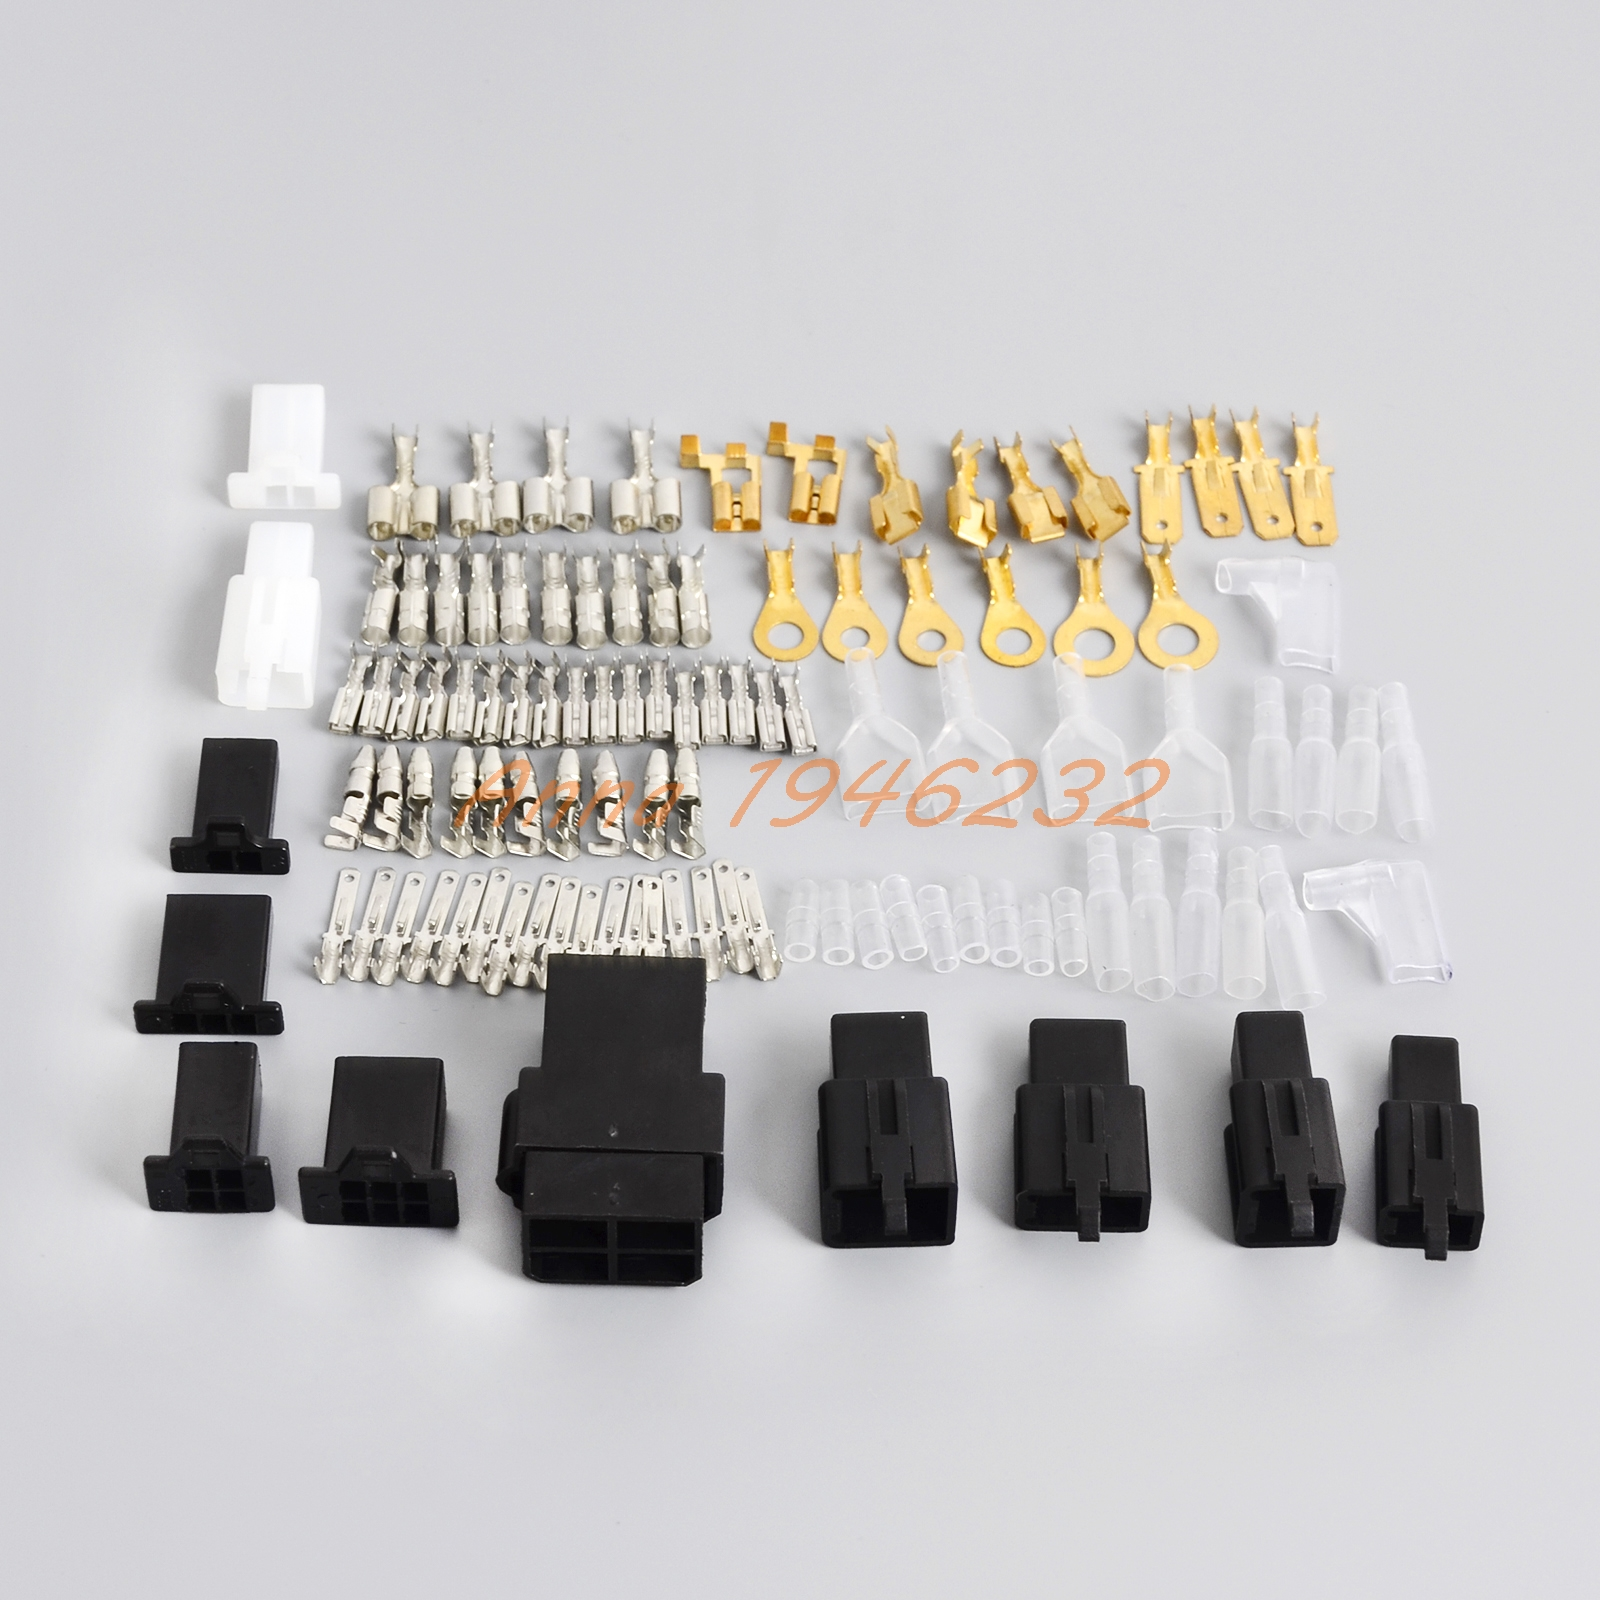 hight resolution of electrical wiring harness loom repair kit plugs bullets for honda nc50 cb500 cbr250 vf750 cb125 cb250